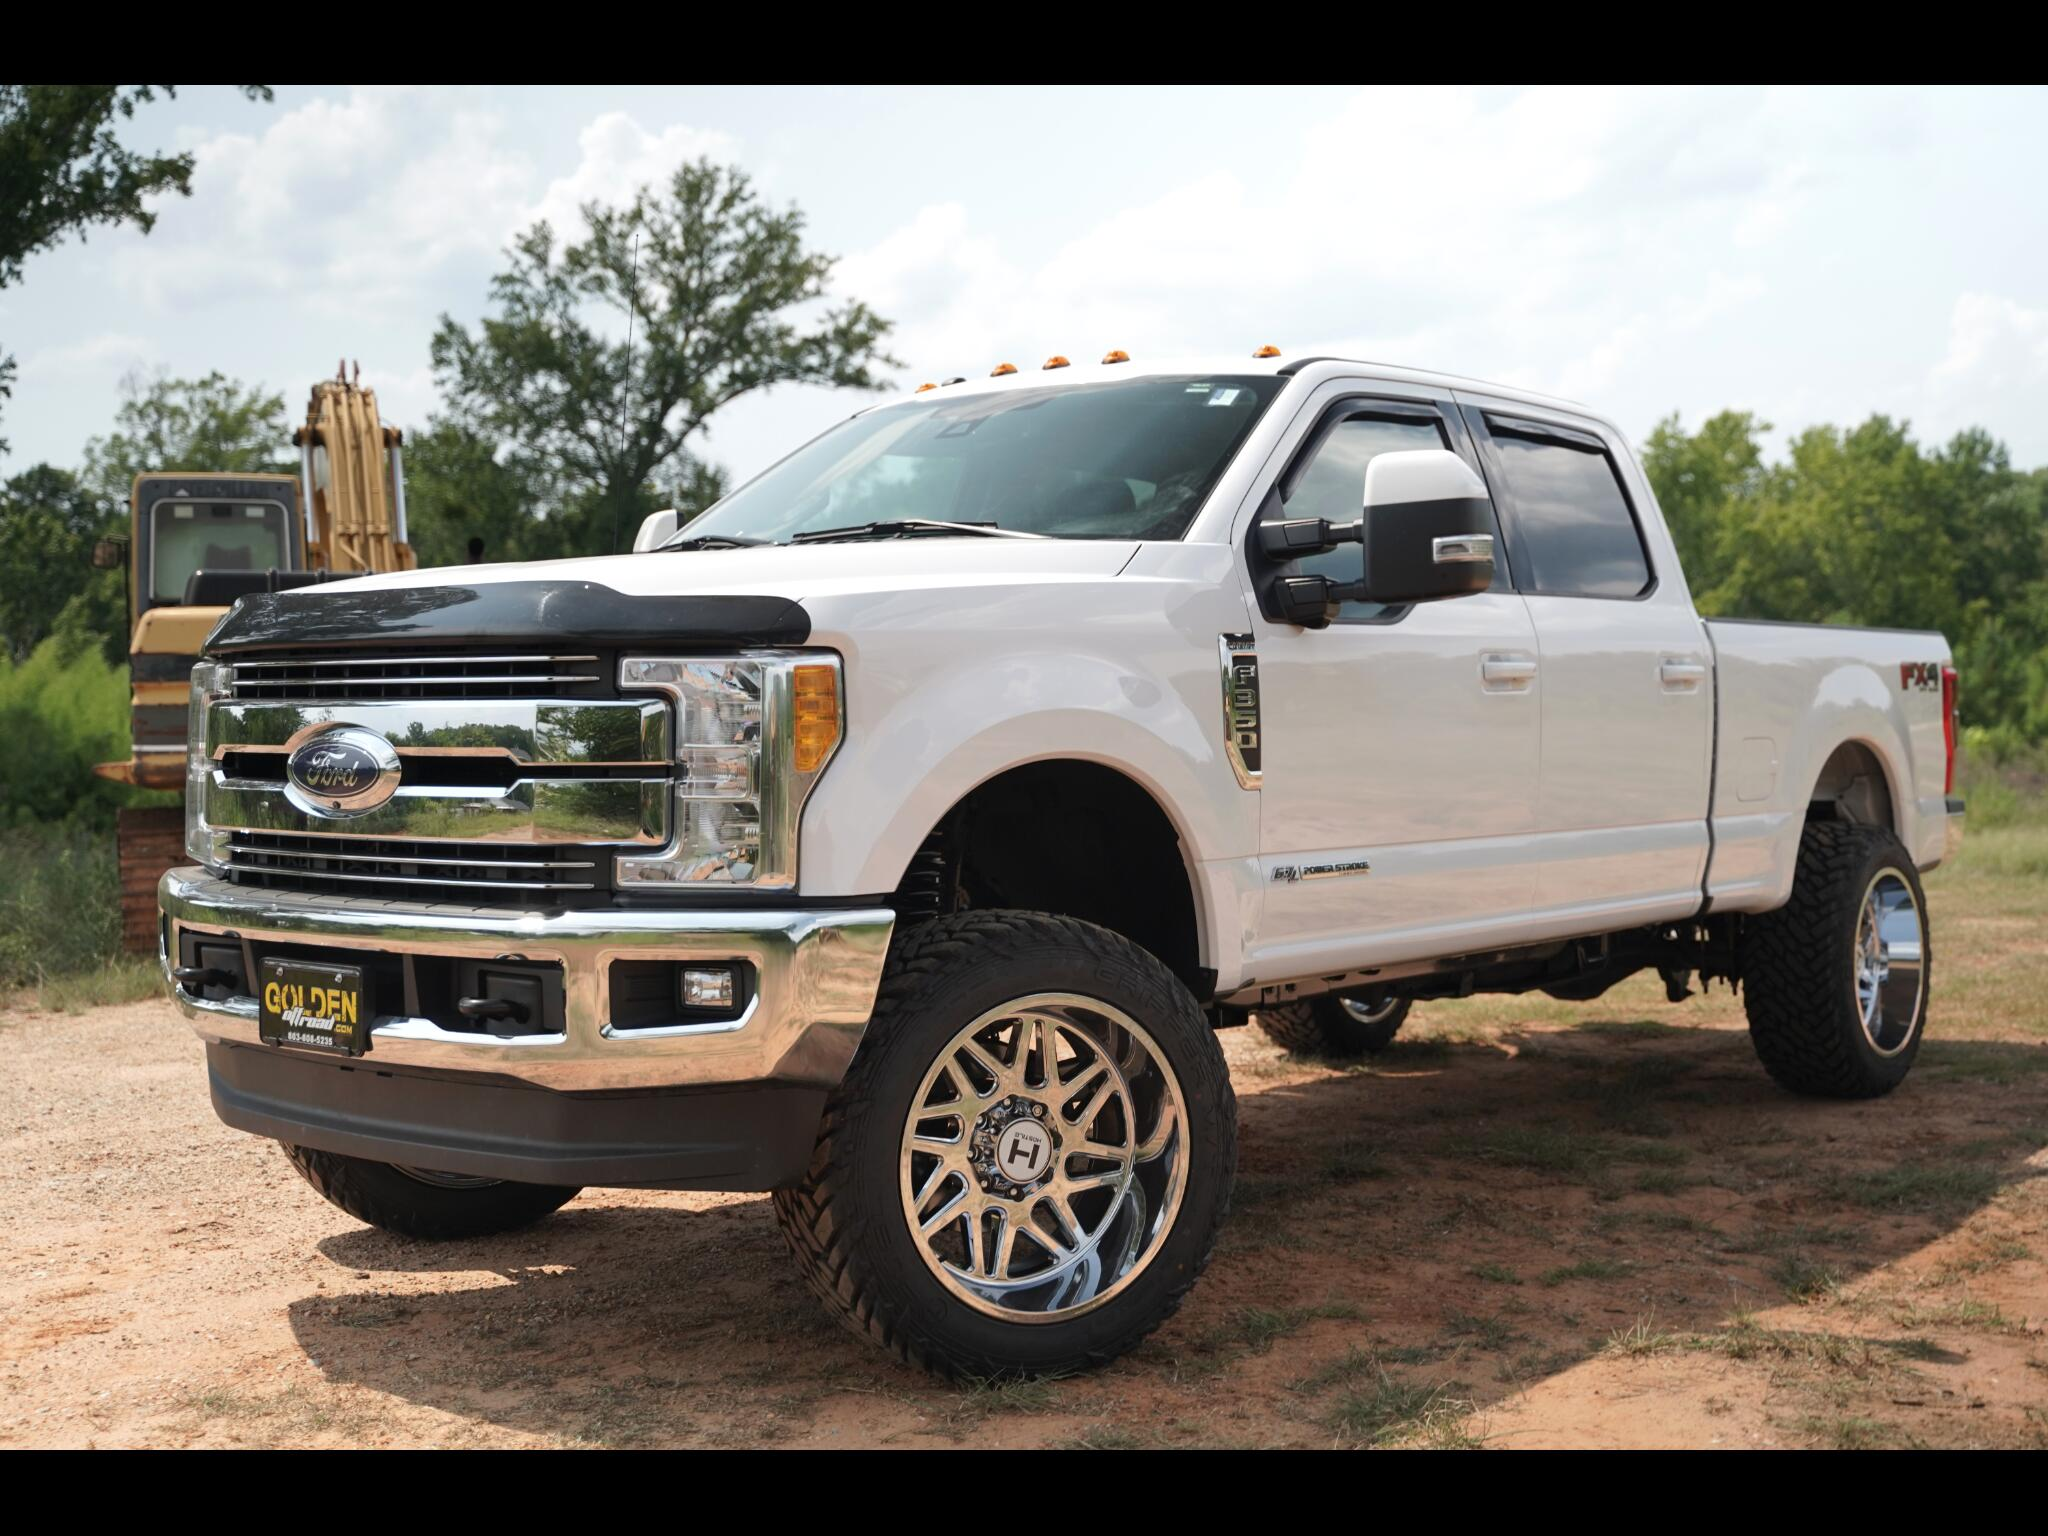 2017 Ford Super Duty F-350 SRW Lariat Crew Cab Loaded Lifted Tons Of Extras Diese